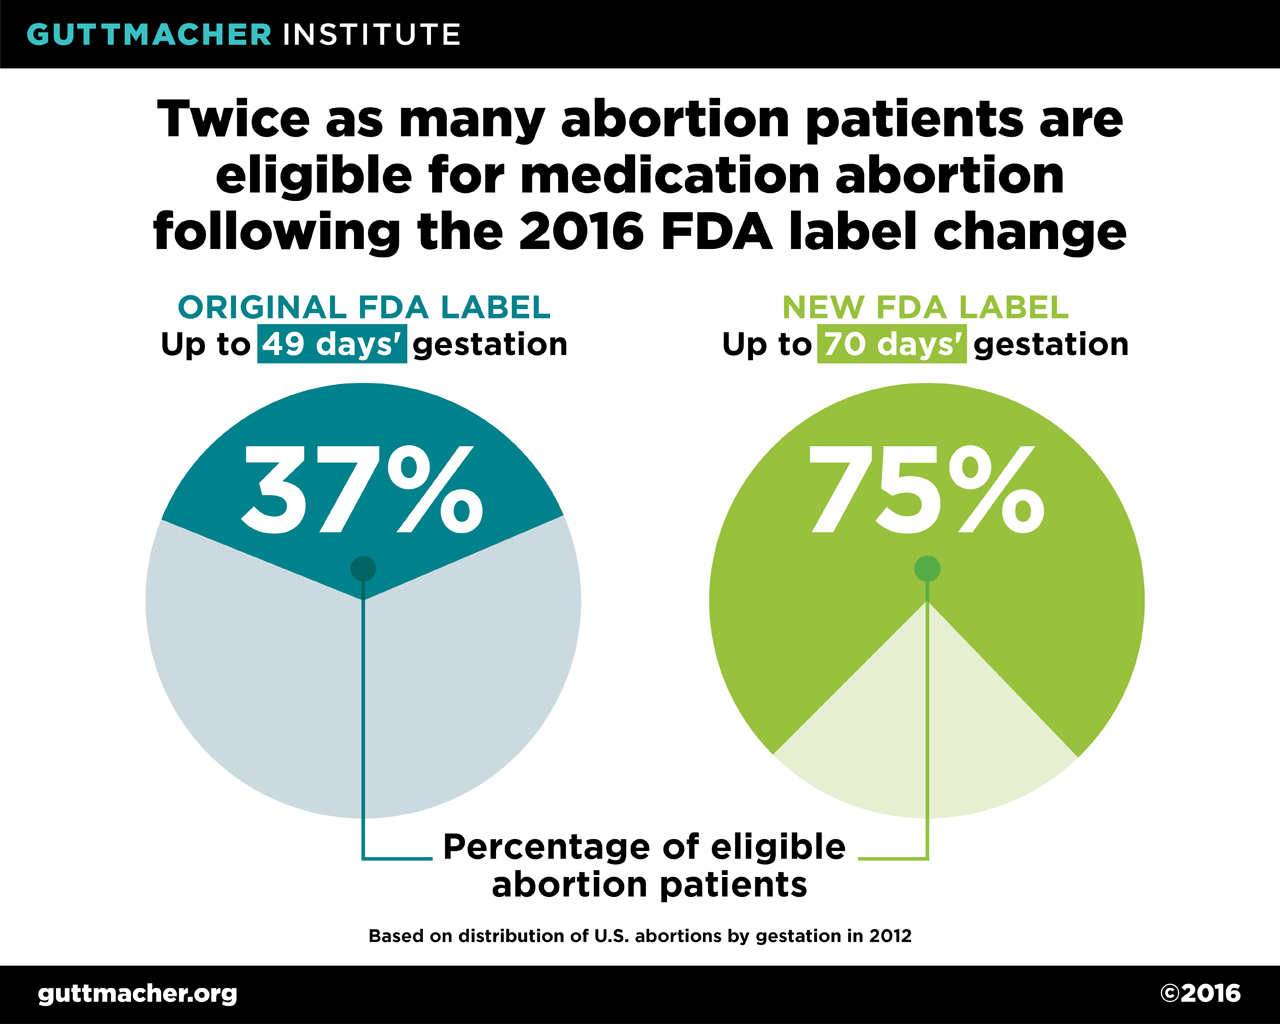 Twice as many abortion patients are eligible for medication abortion twice as many abortion patients are eligible for medication abortion following the 2016 fda label change guttmacher institute ccuart Image collections